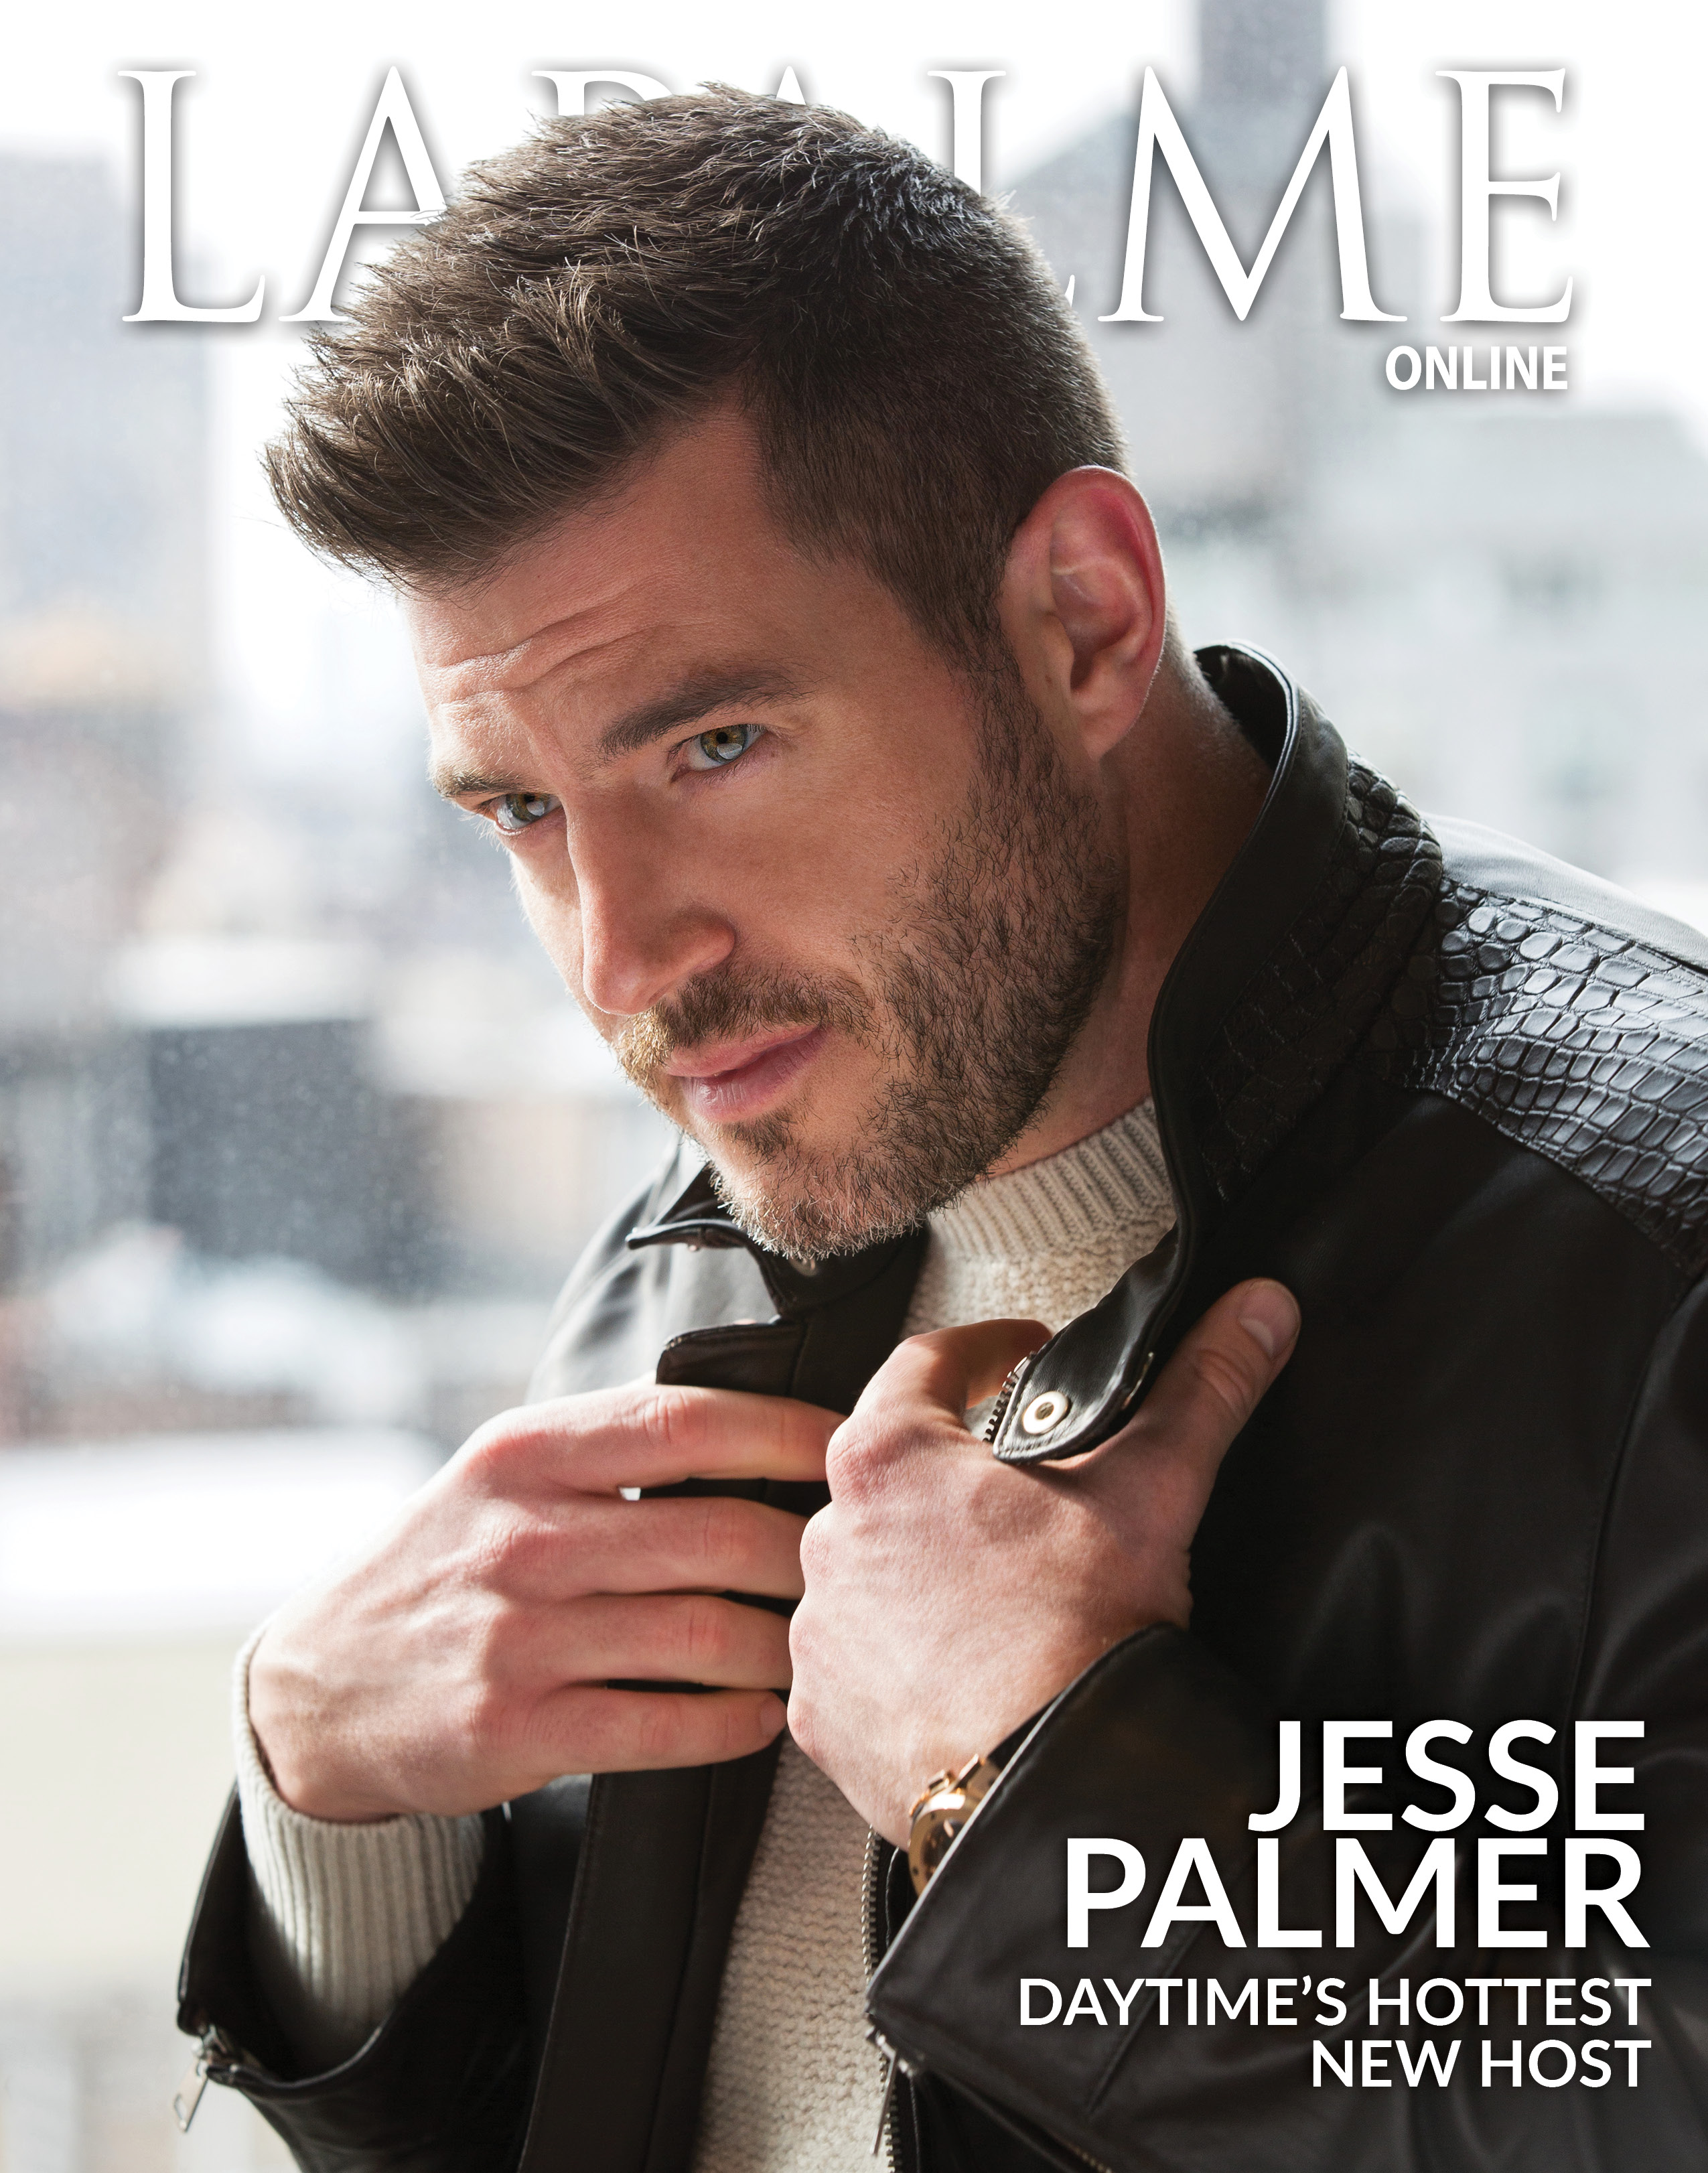 Jesse Palmer: Hottest New Host